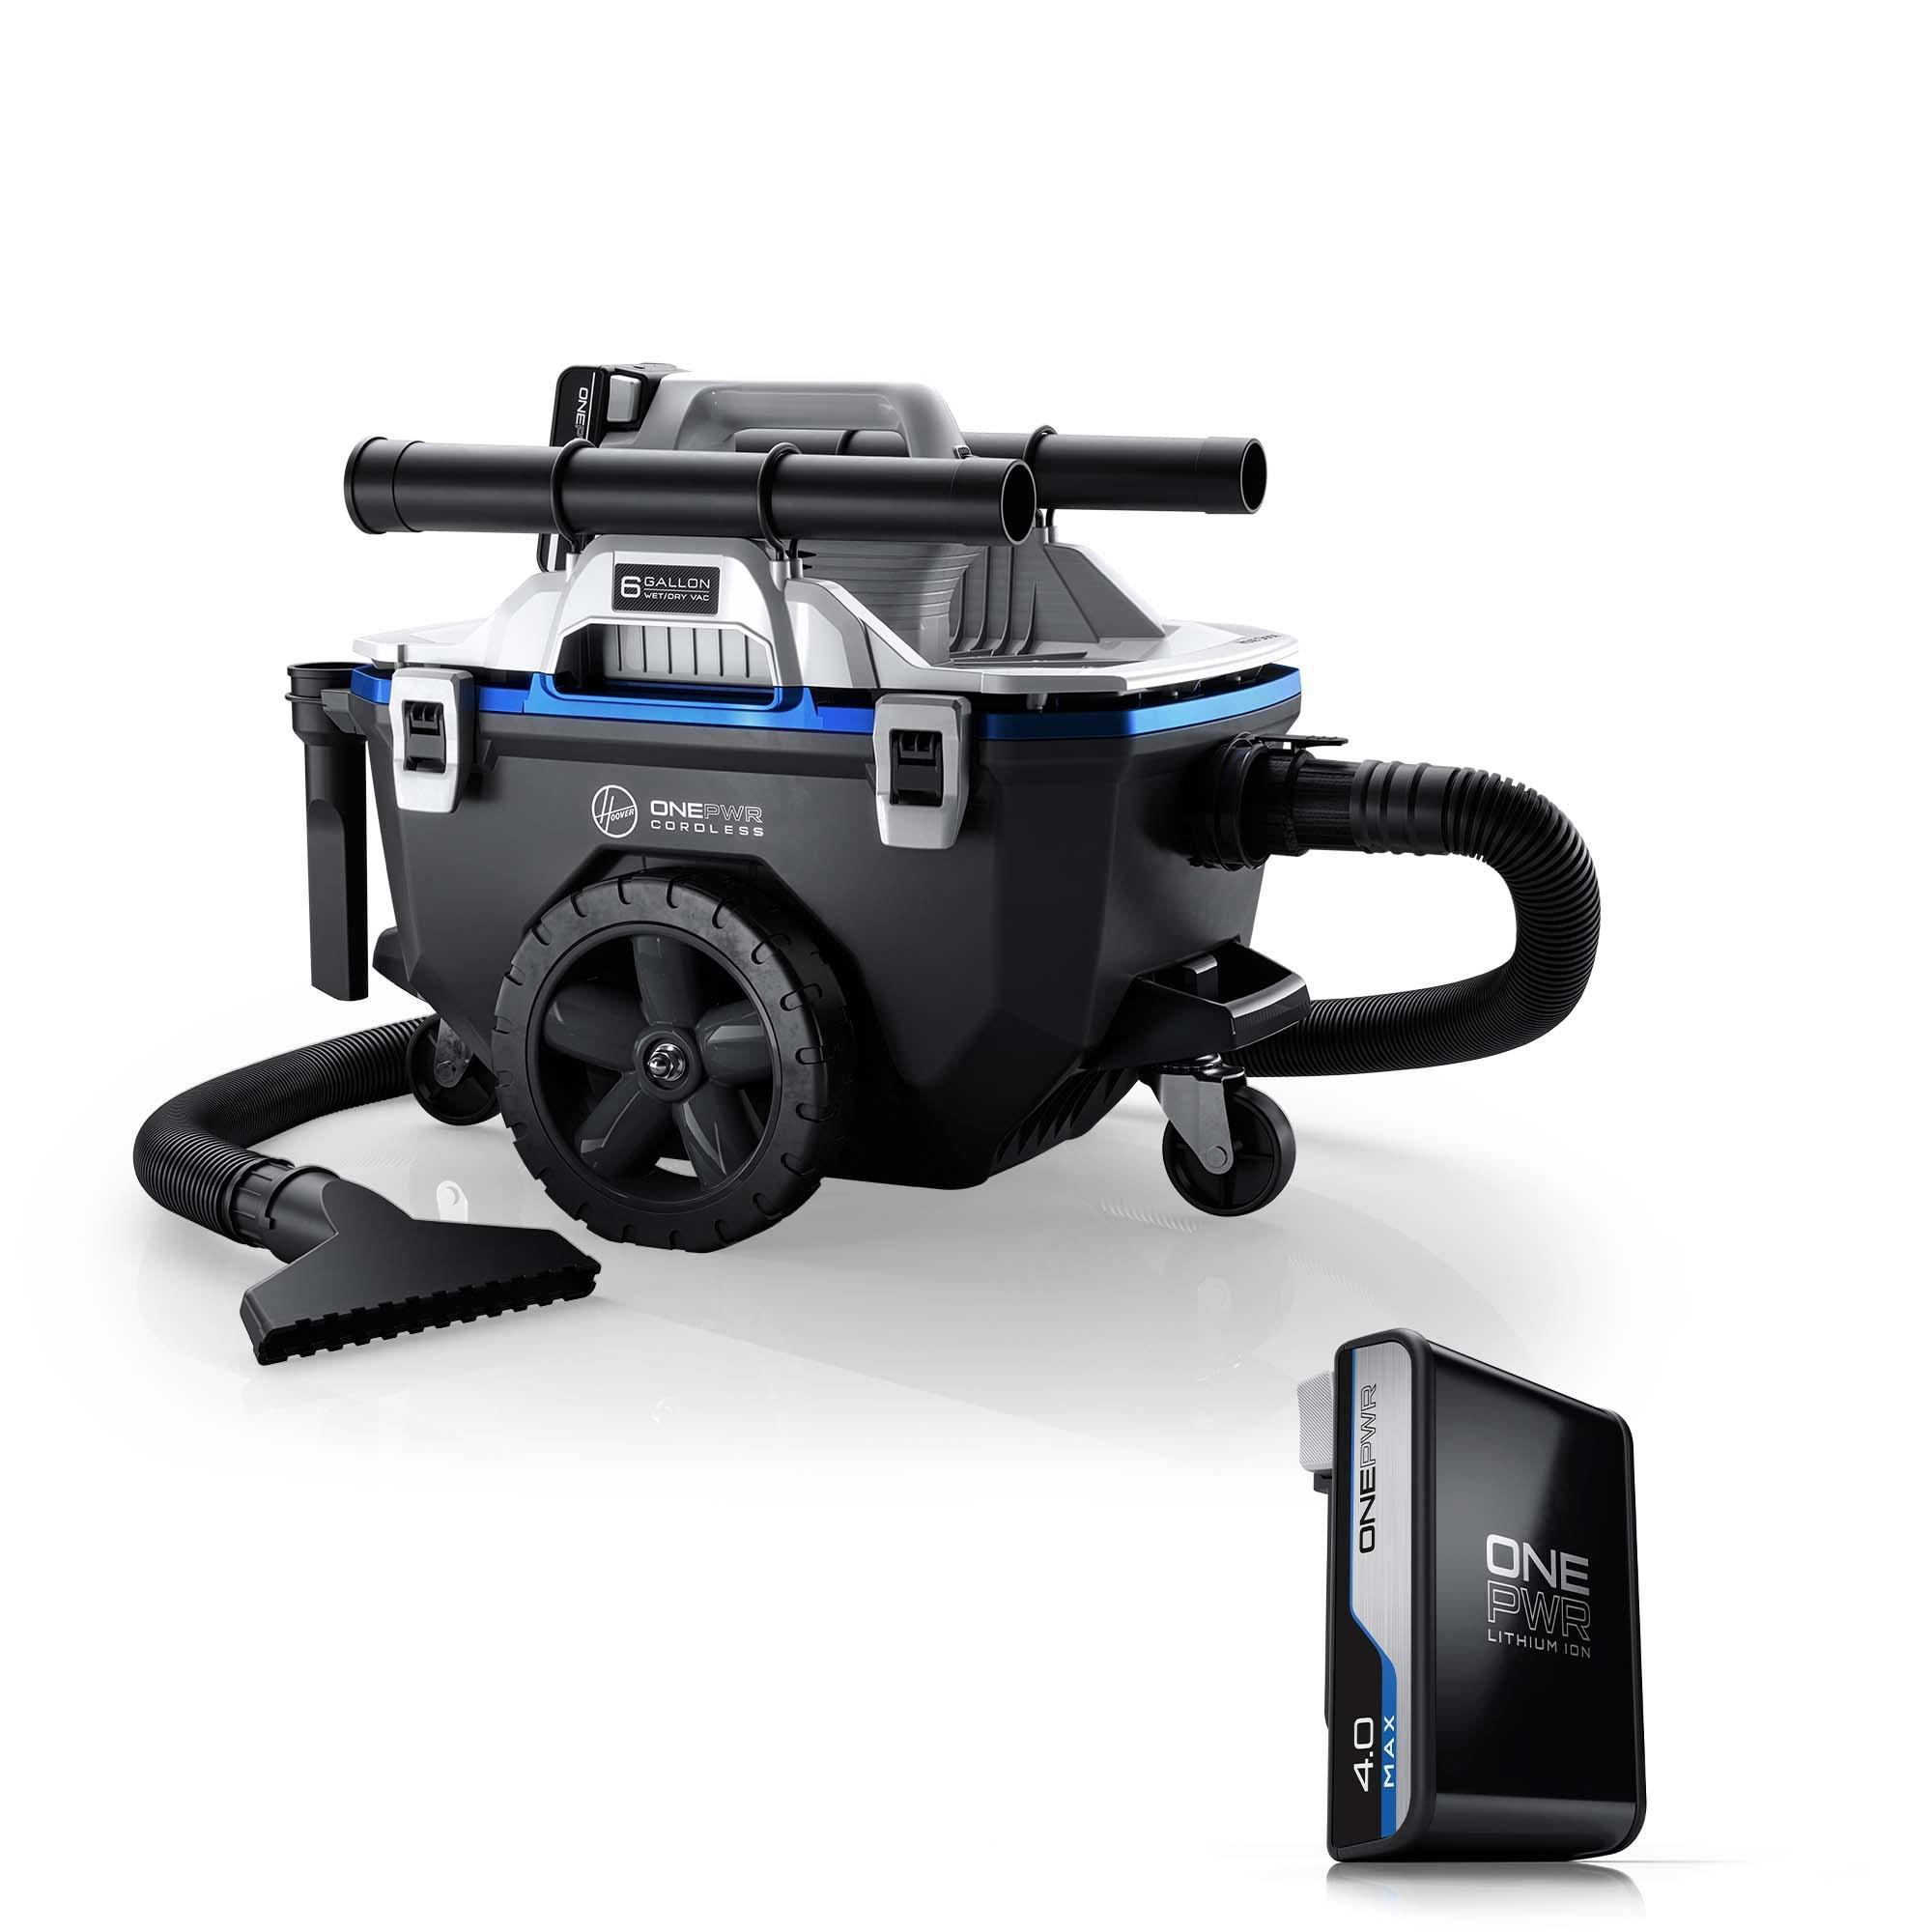 ONEPWR Blade+ Stick Vacuum with Spotless GO Portable Spot Cleaner